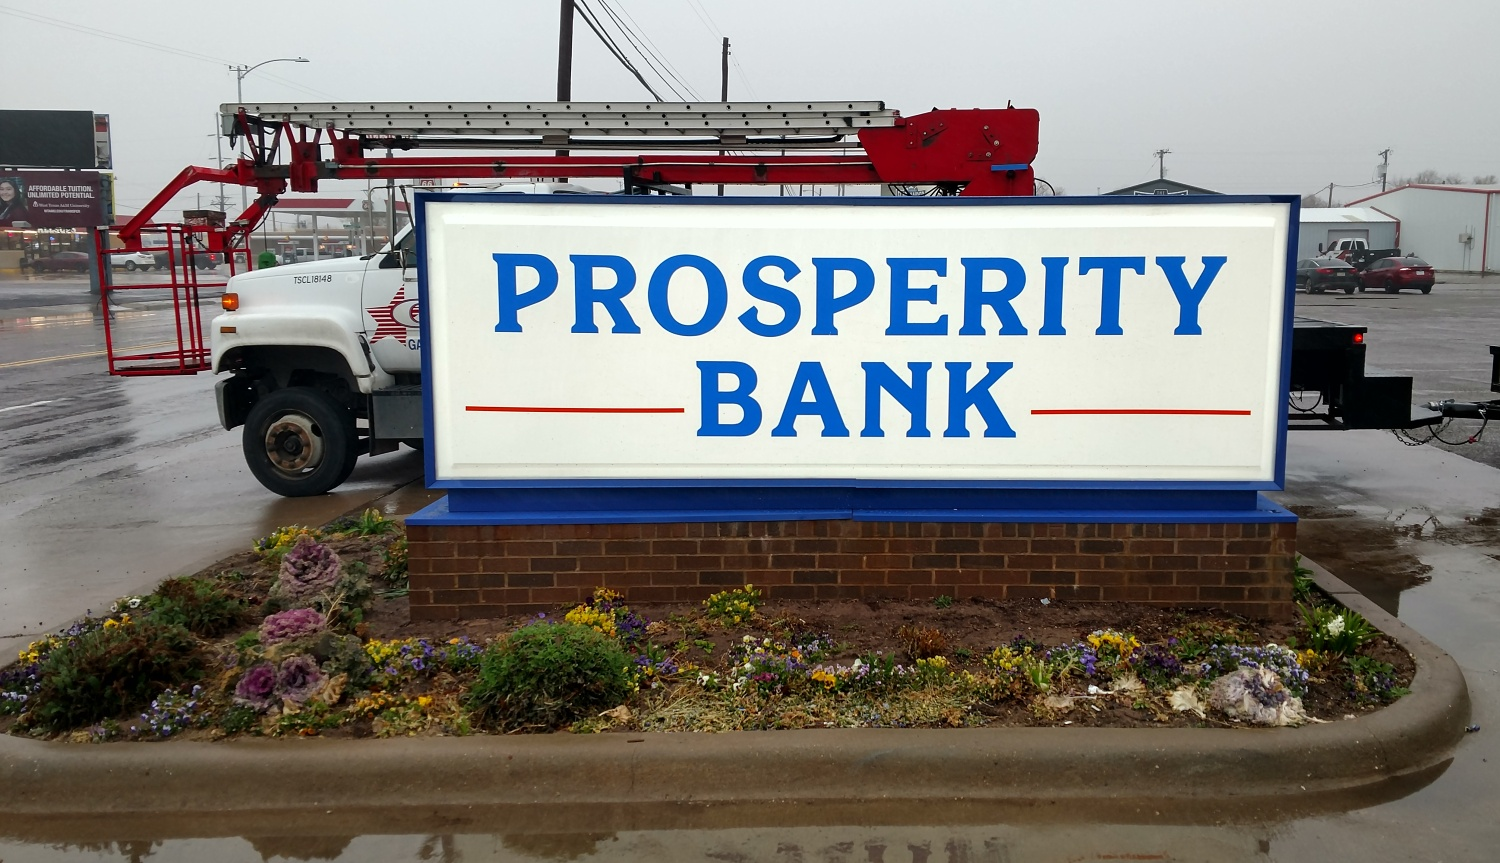 Prosperity Bank - Levelland, TX